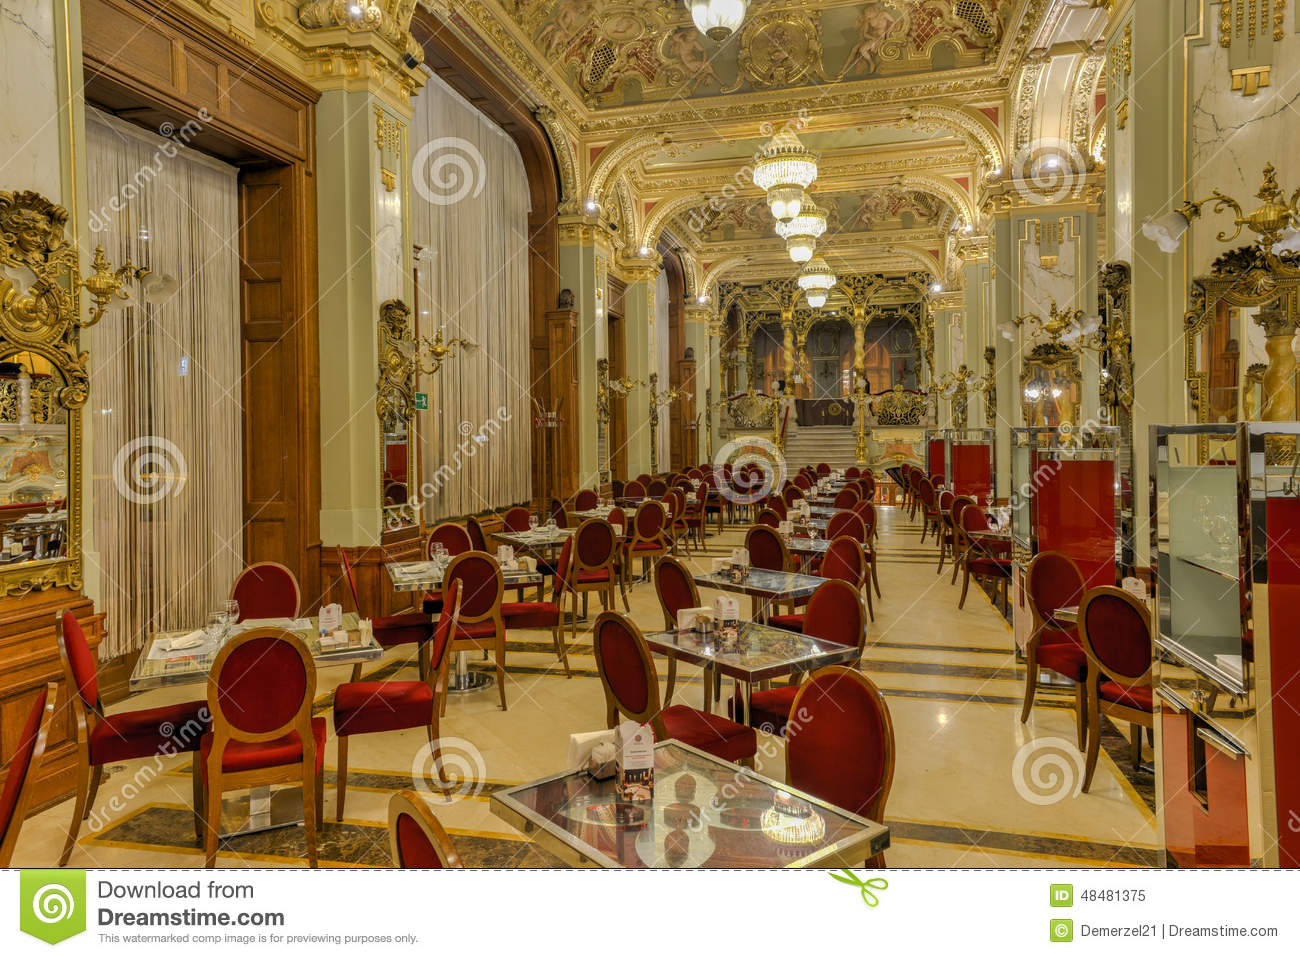 New york cafe budapest hungary editorial image image for Luxury extended stay hotels nyc